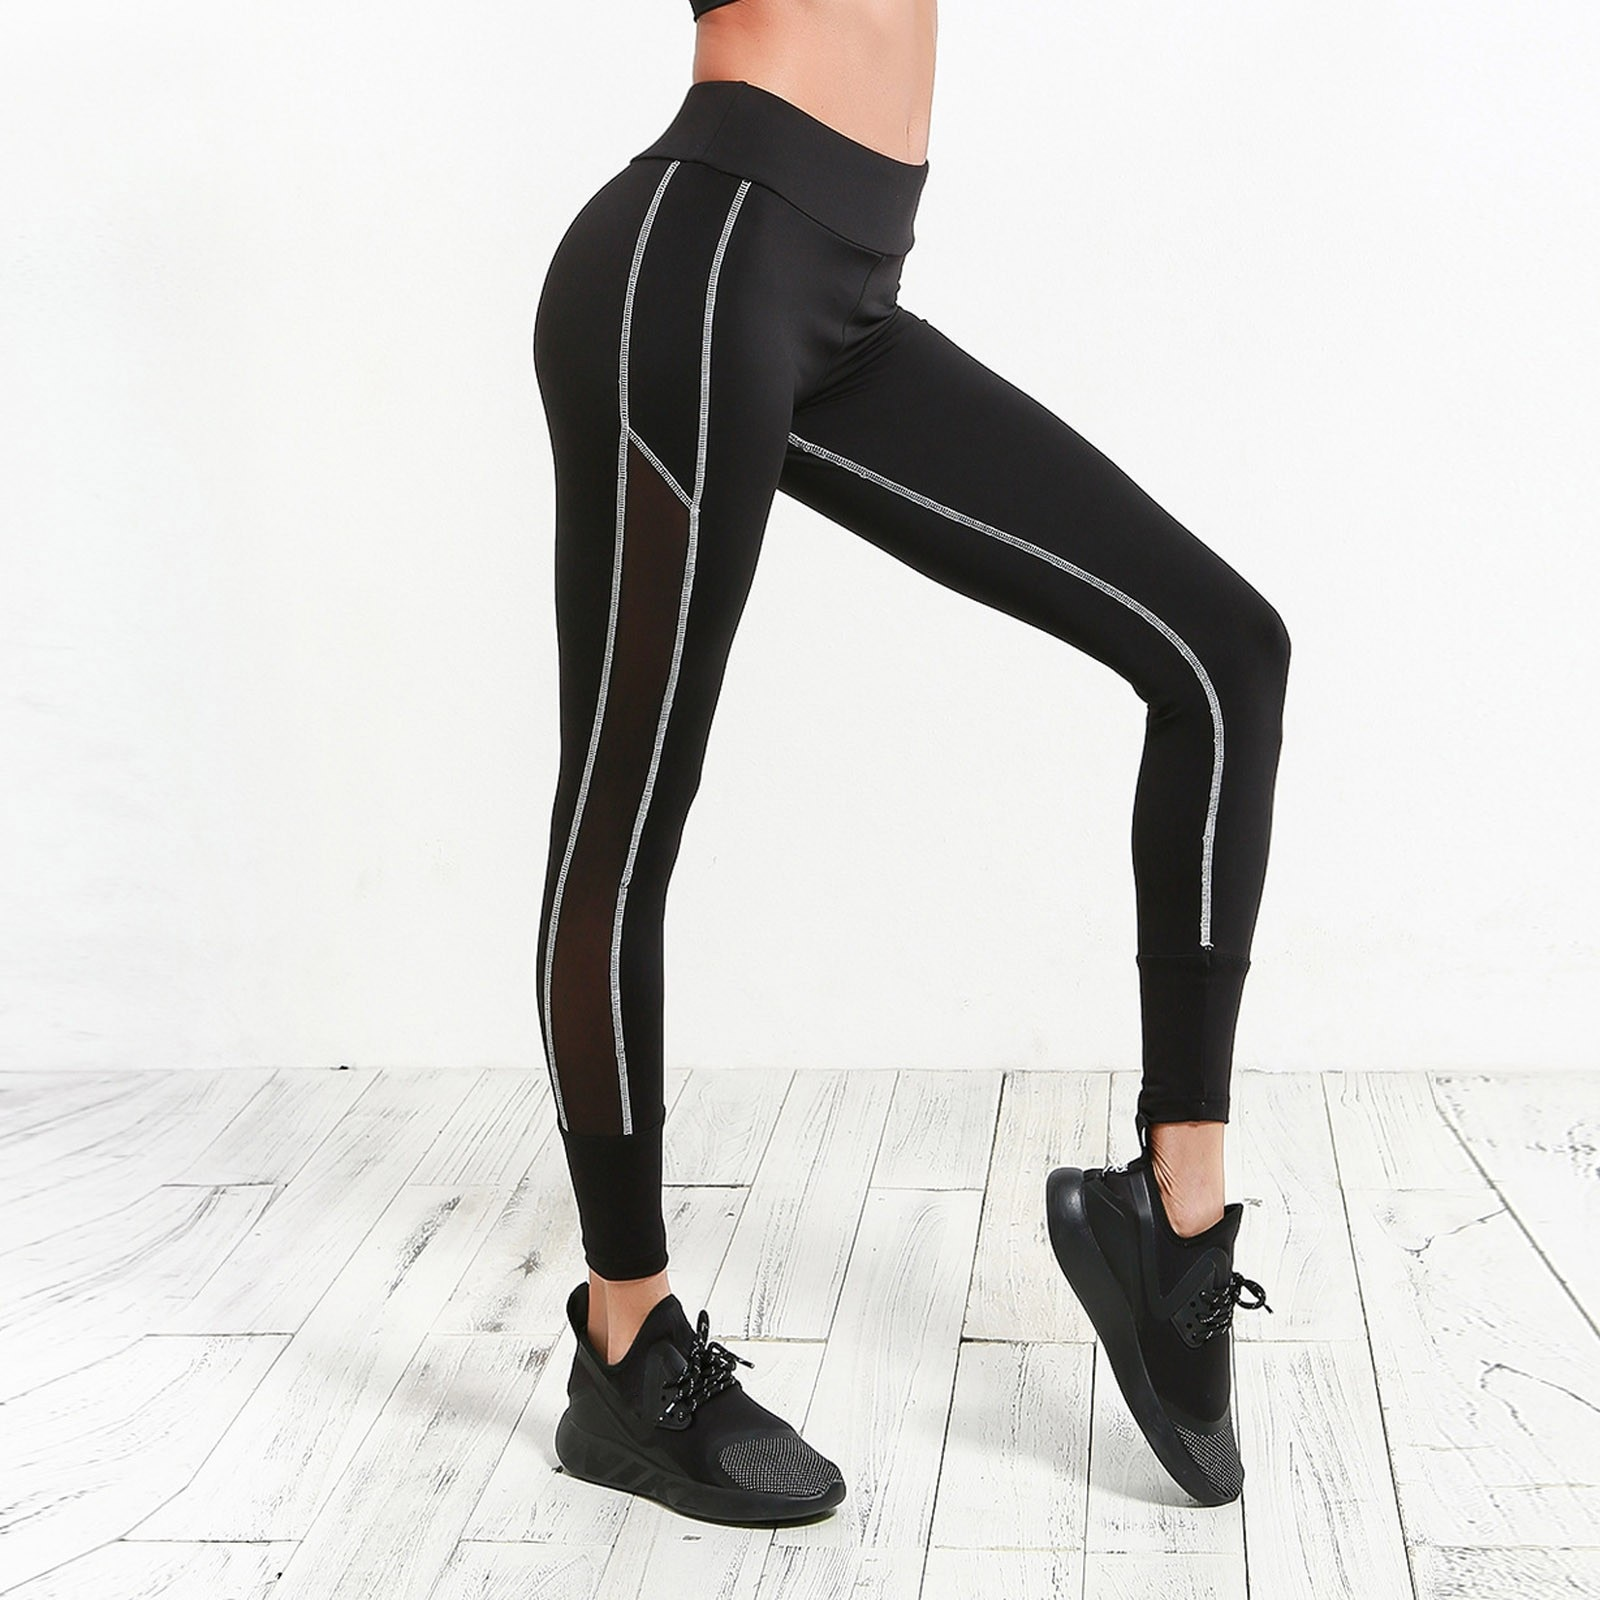 Women's Casual Thin Lifting Buttocks Stitching Fitness Exercise Yoga Pants Спортивные Штаны Running Wear For Women#35